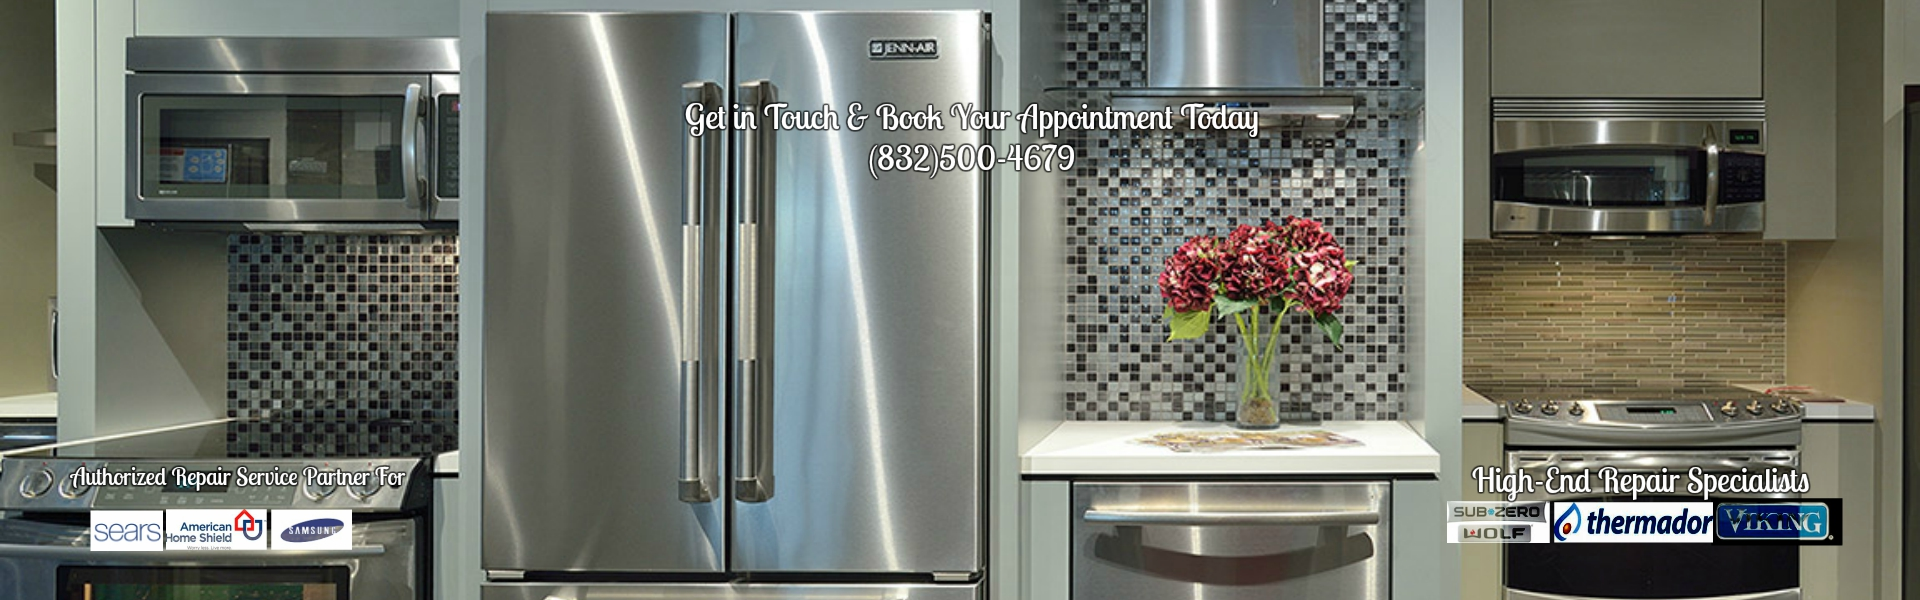 Houston Refrigerator-Freezer-Ice Maker Repair